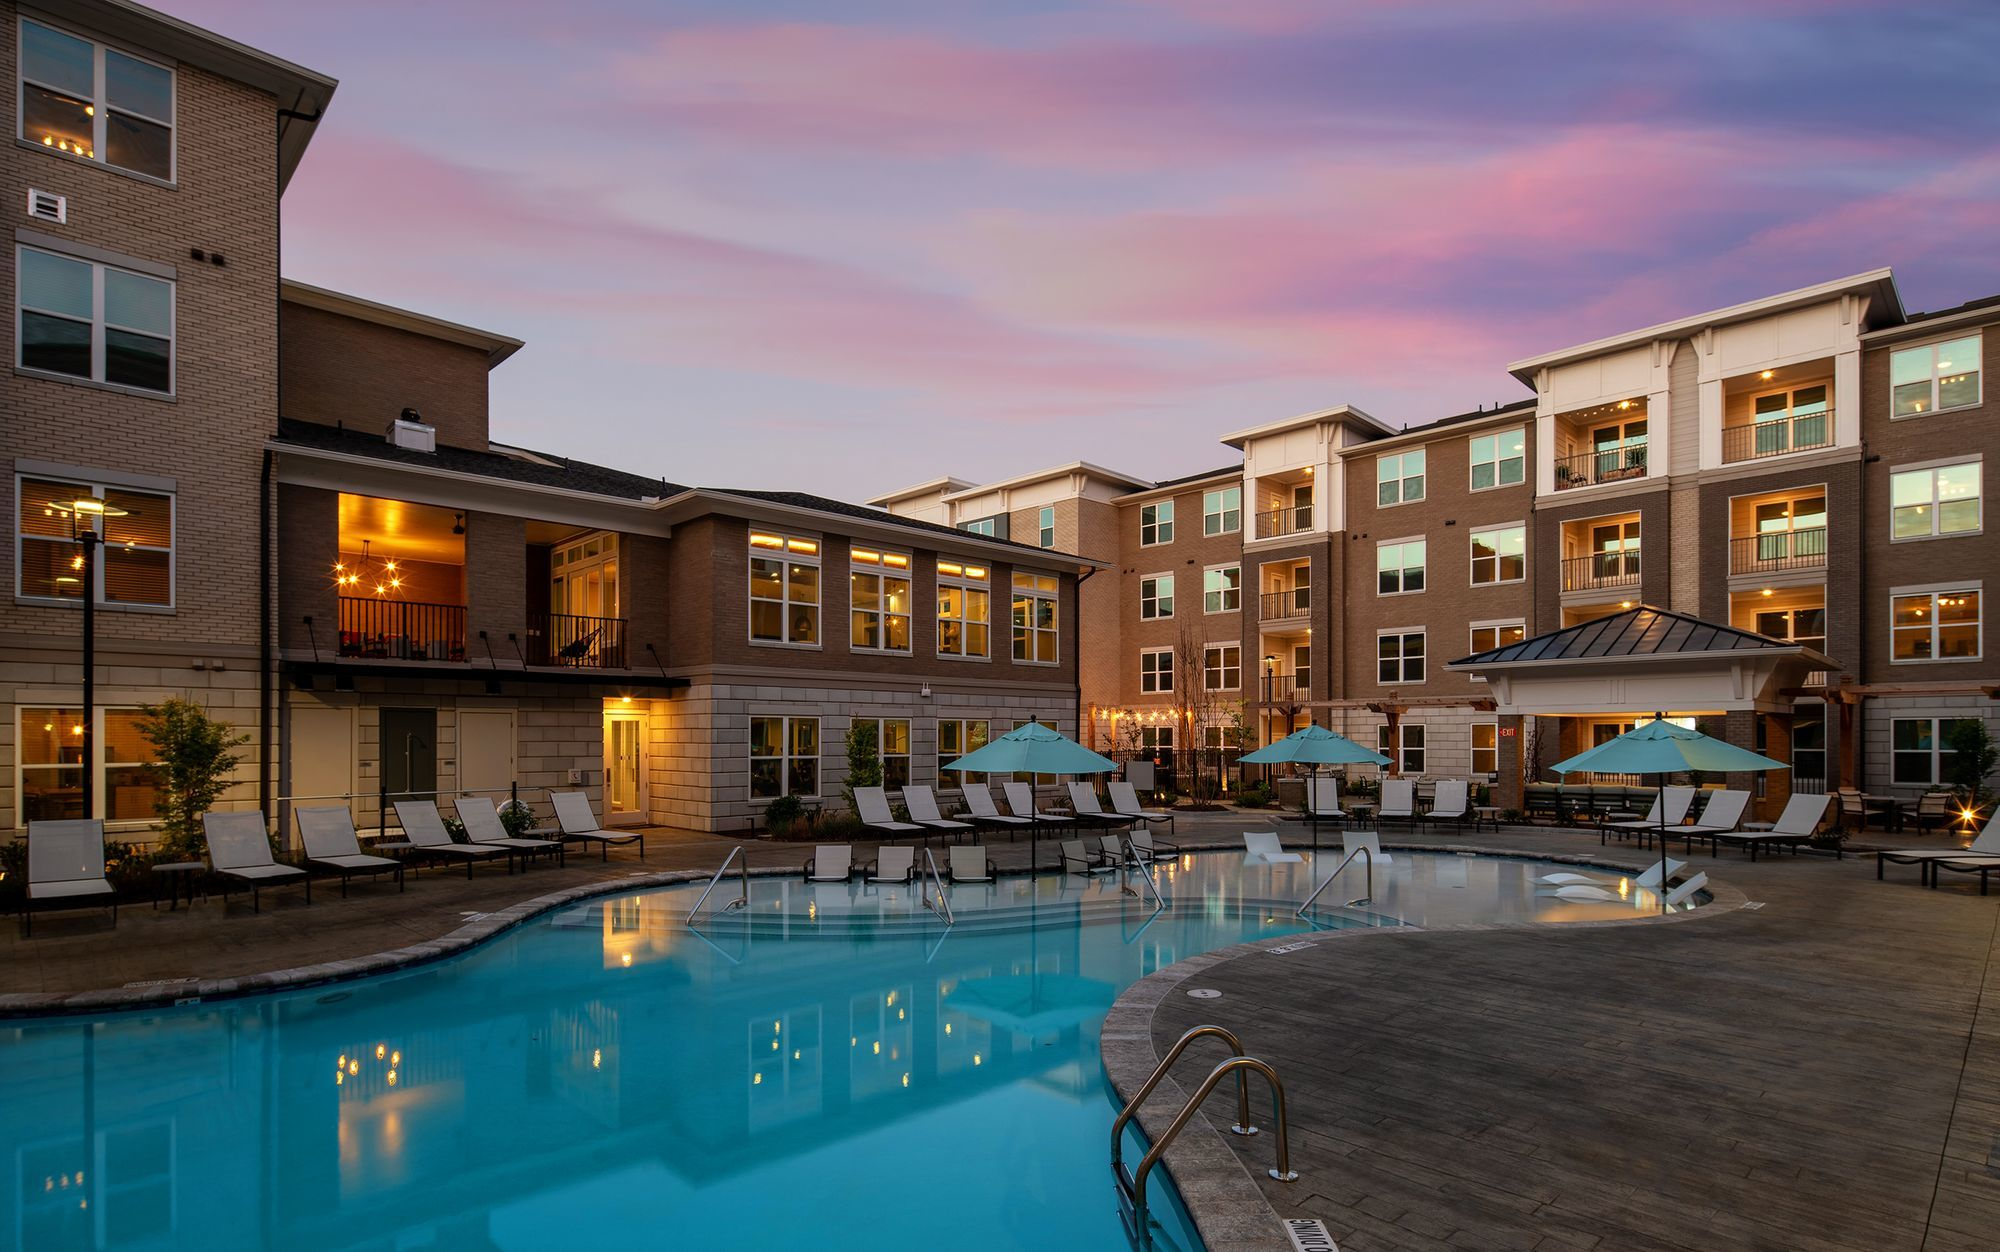 Top 143 1 Bedroom Apartments for Rent in Morrisville, NC